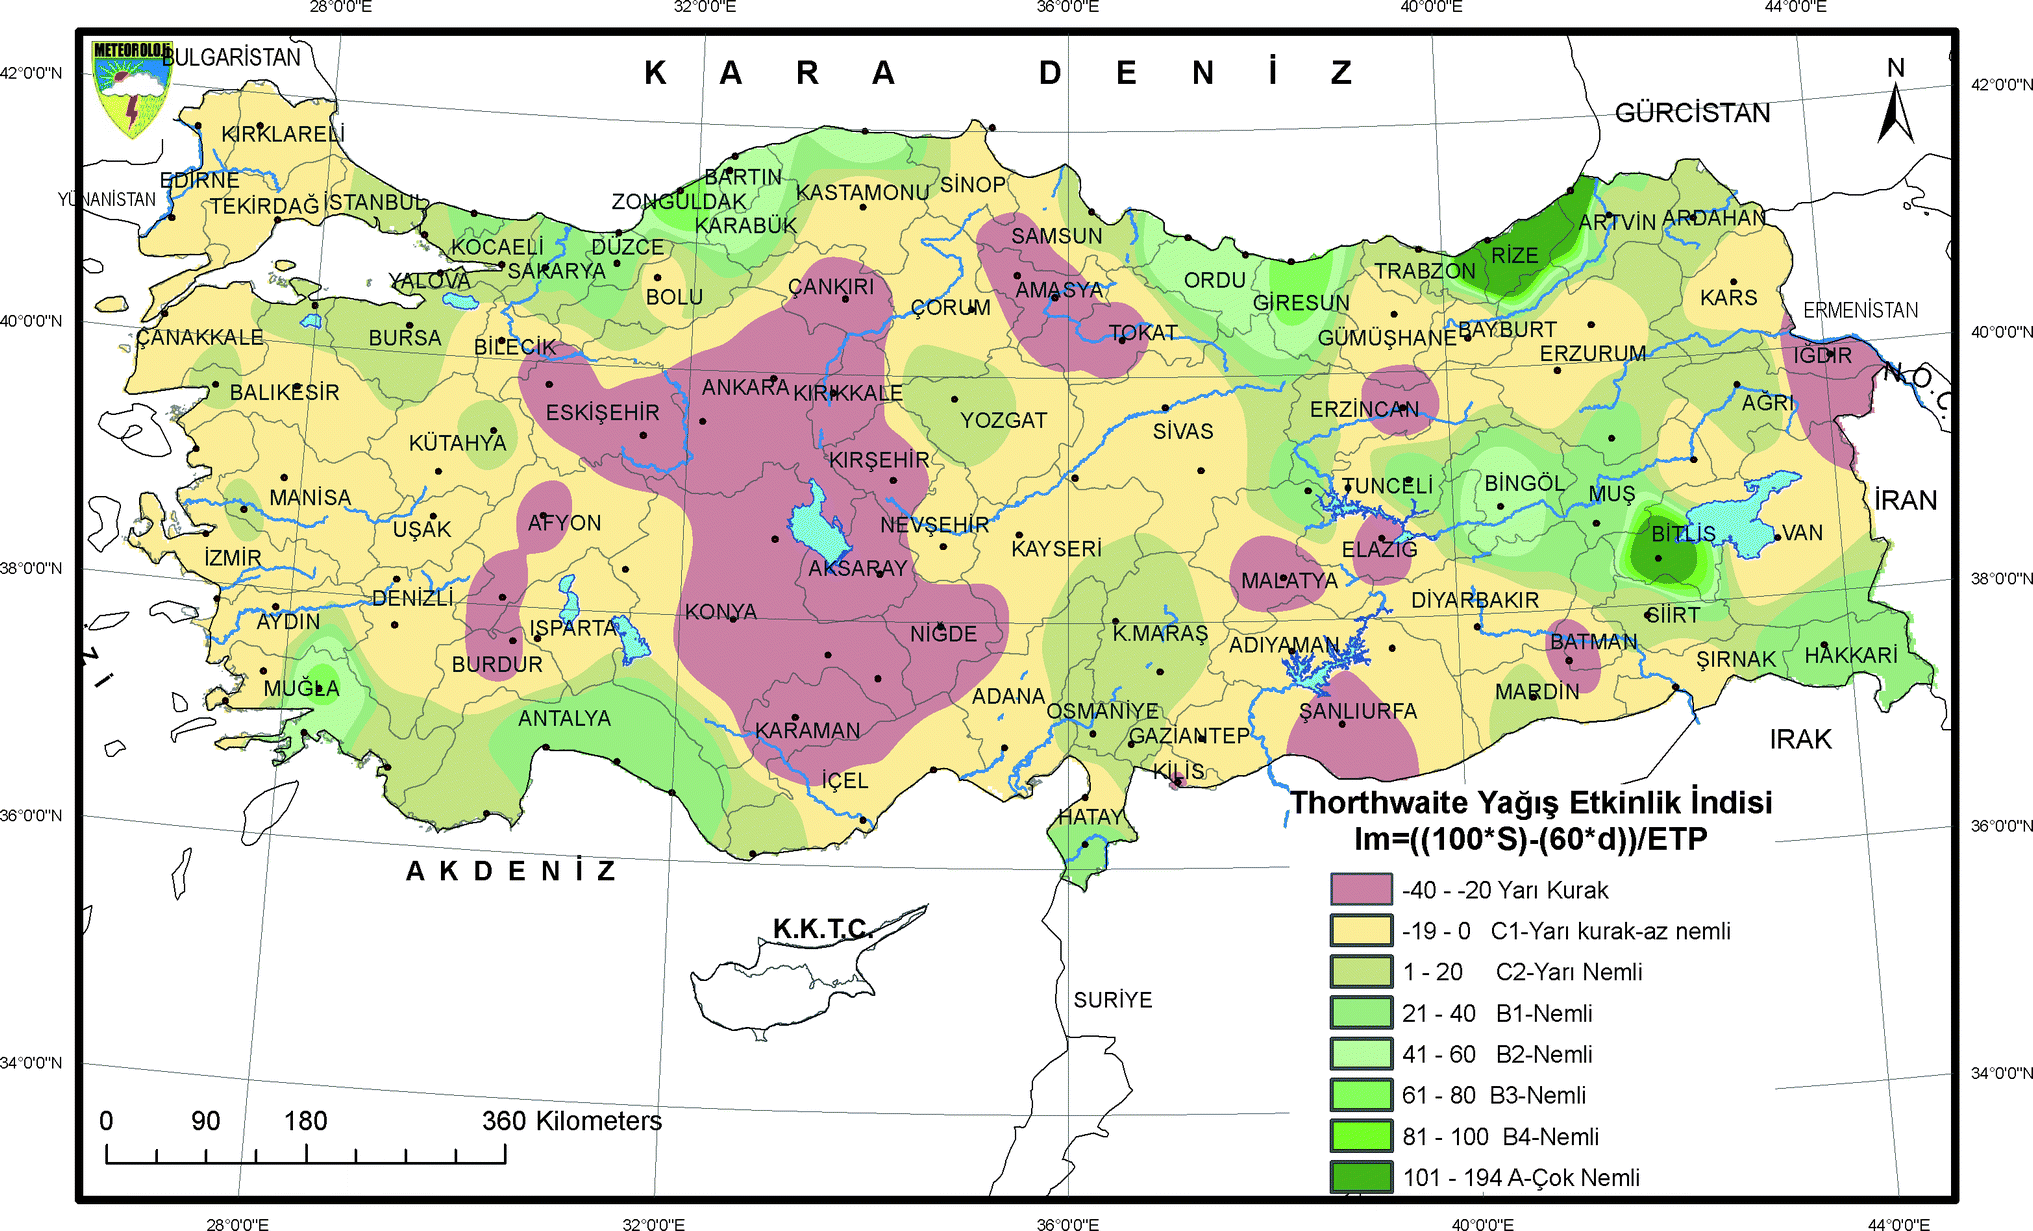 The Physical Geography of Turkey: An Outline | SpringerLink on syrian desert map, euphrates river map, lebanon mountains map, arabian peninsula map, elburz mountains map, suez canal map, anatolian plateau map, pyrenees mountains map, hindu kush map, apennine mountains map, pontic mountains map, tian shan map, anatolian mountains map, plateau of iran map, hejaz mountains map, arabian desert map, himalayan mountains map, balkan mountains map, arabian sea map, zagros mountains map,